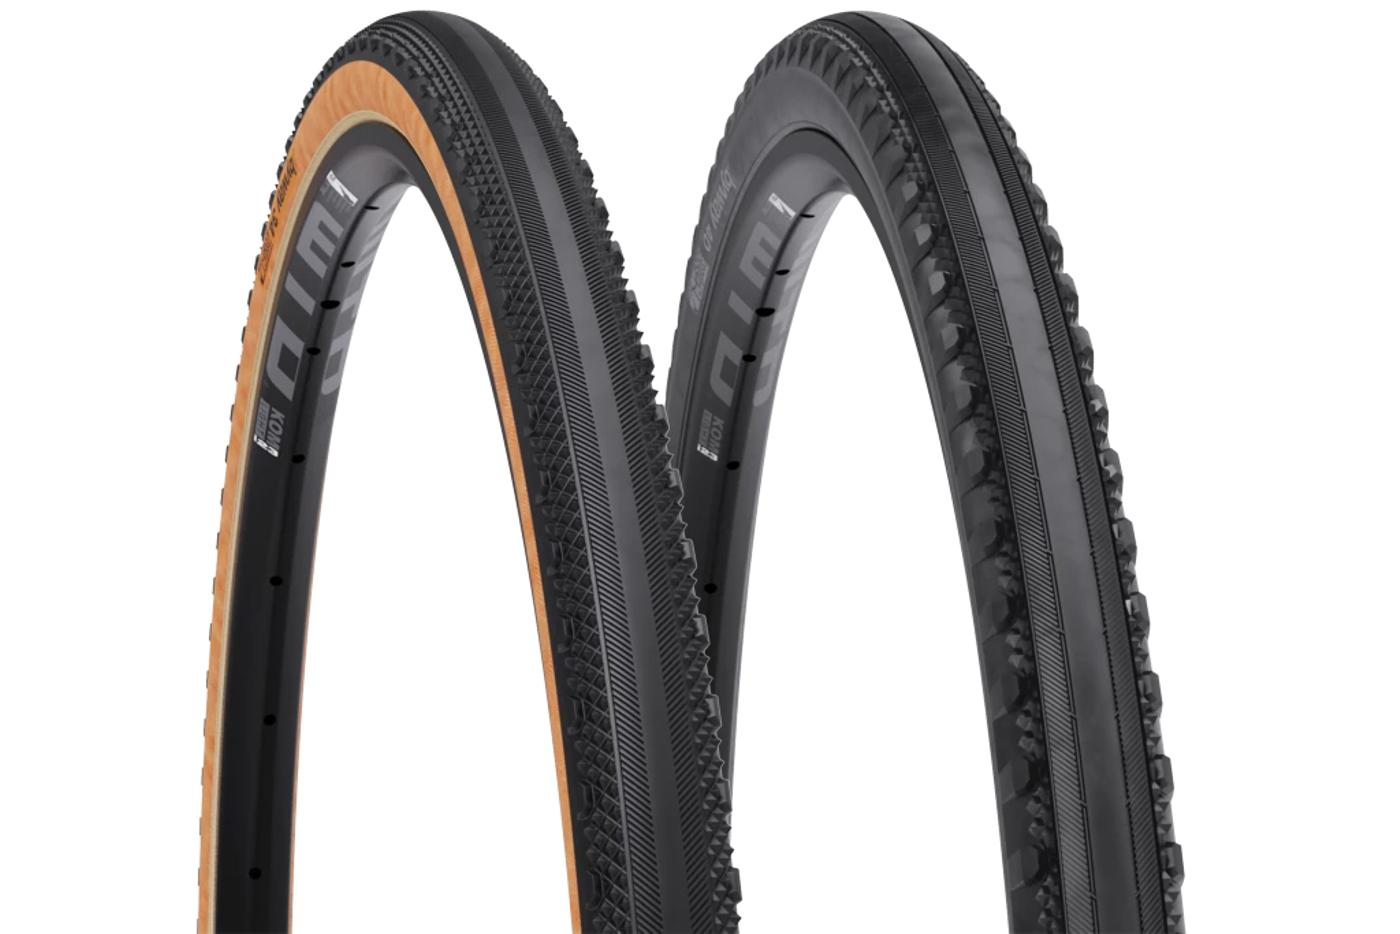 WTB's Byway Design Goes 700c Offering 34mm, 40mm, and 44mm Widths